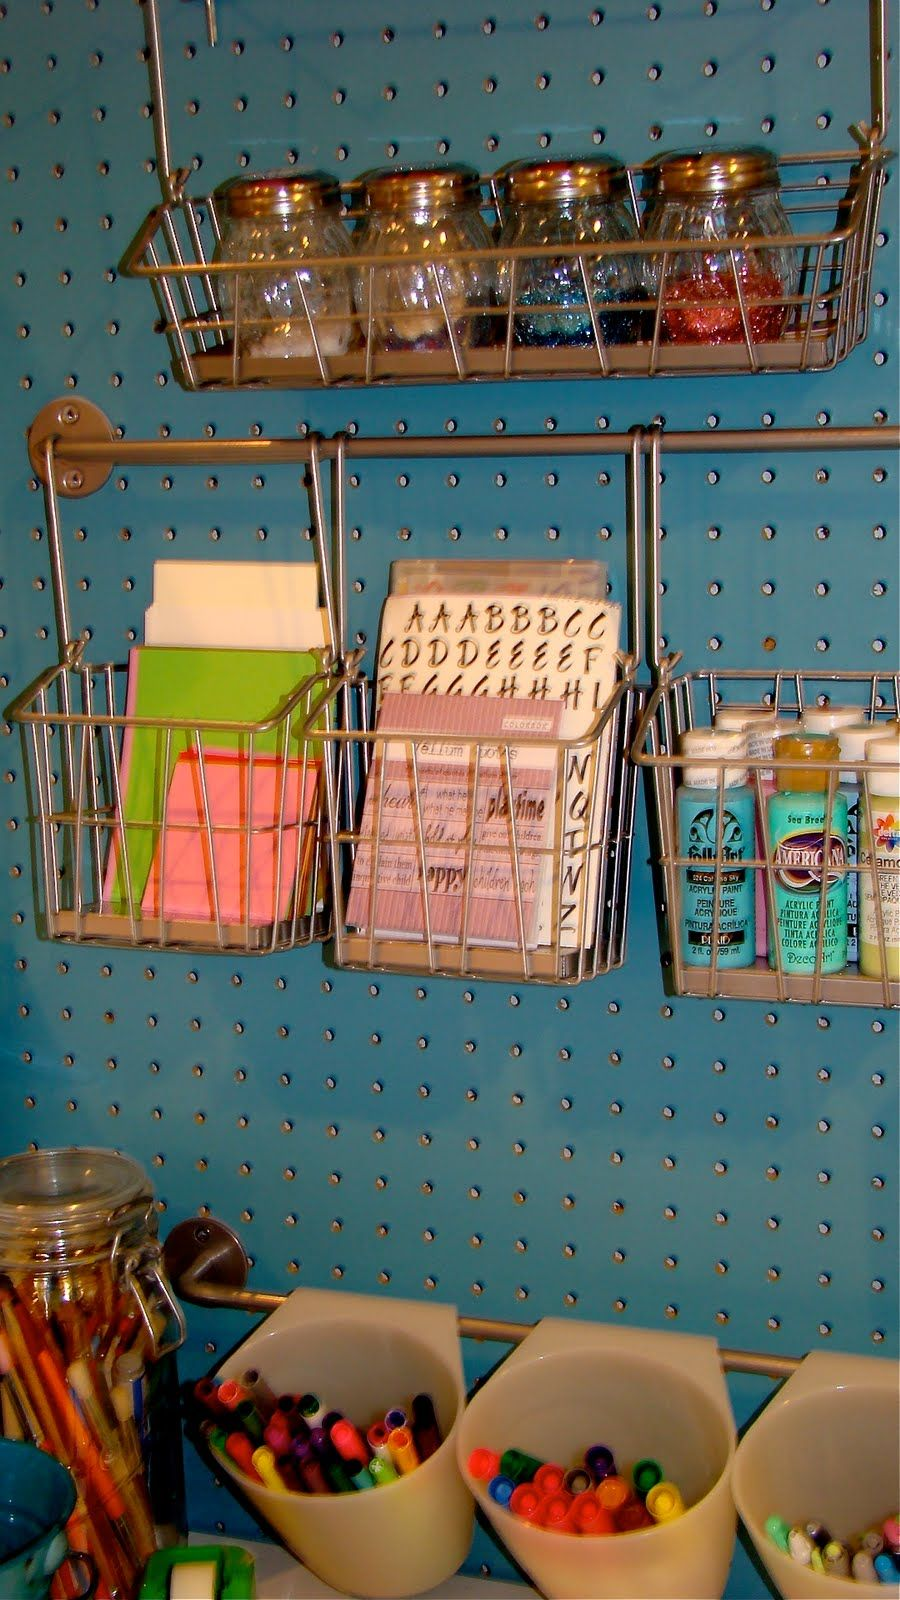 1. Pin boards for craft supplies- awesome 2. Ikea towel bar with ...